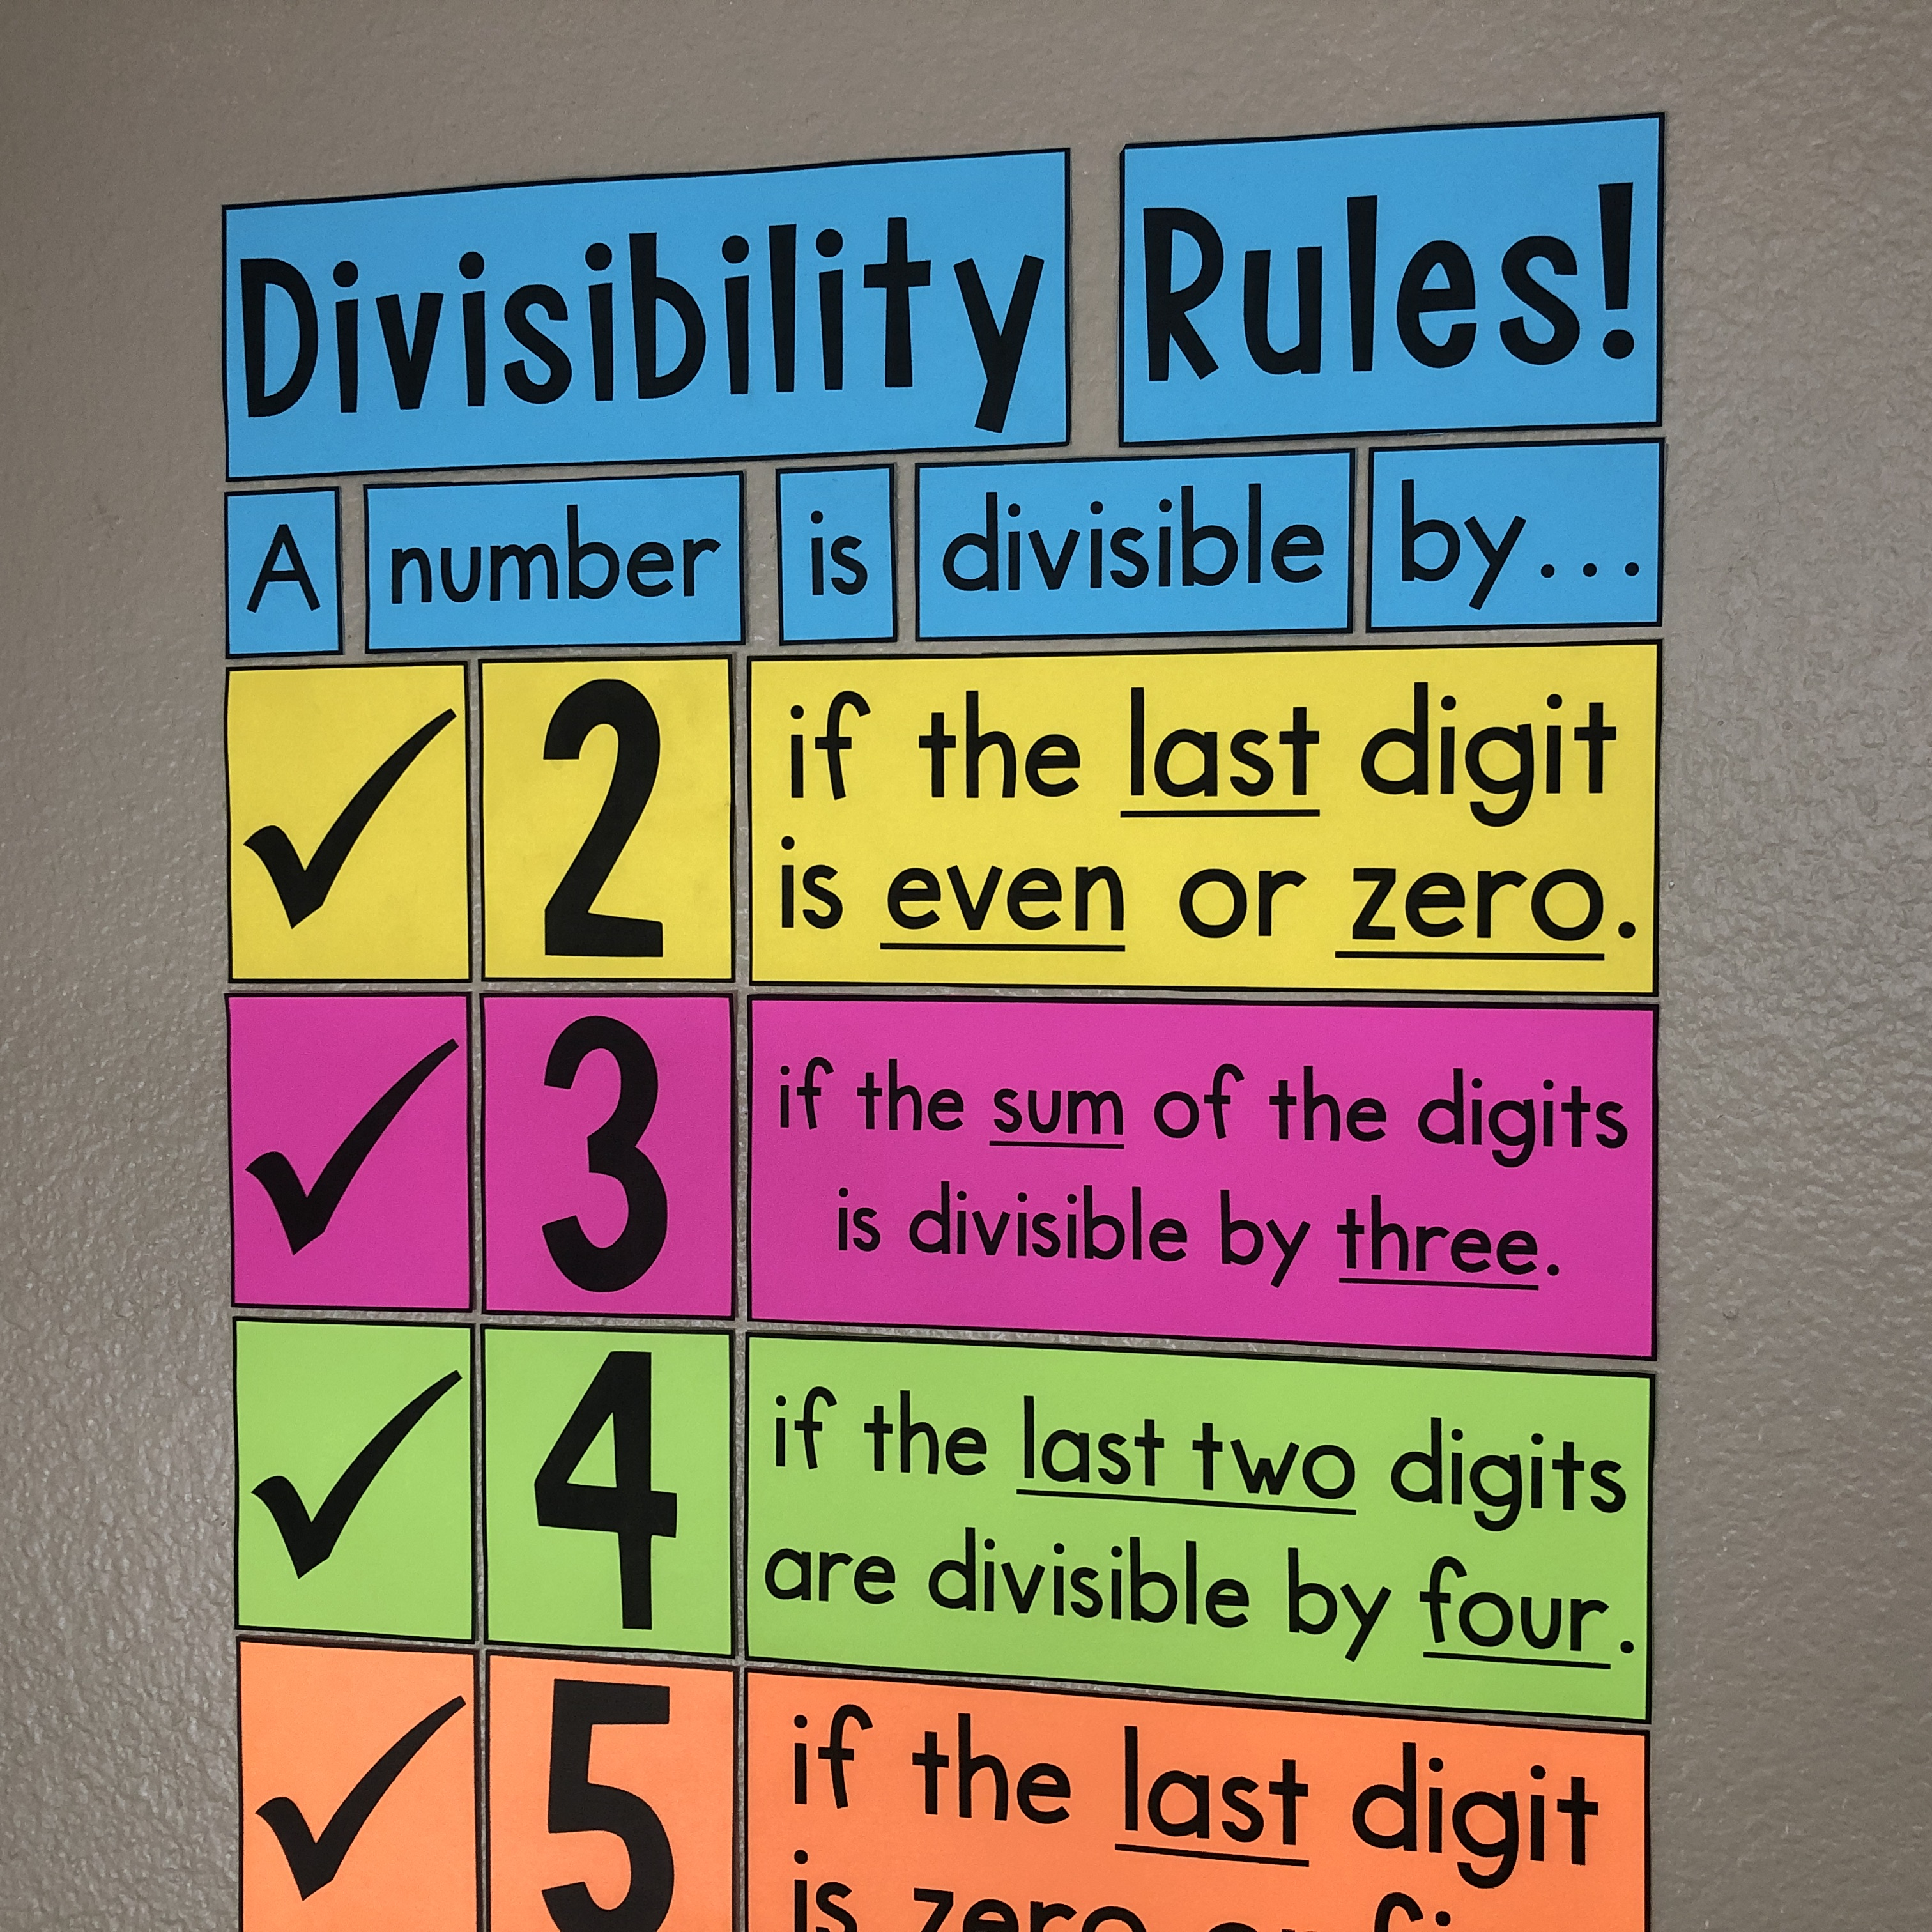 photograph relating to Divisibility Rules Printable referred to as My Math Elements - Divisibility Legal guidelines Poster